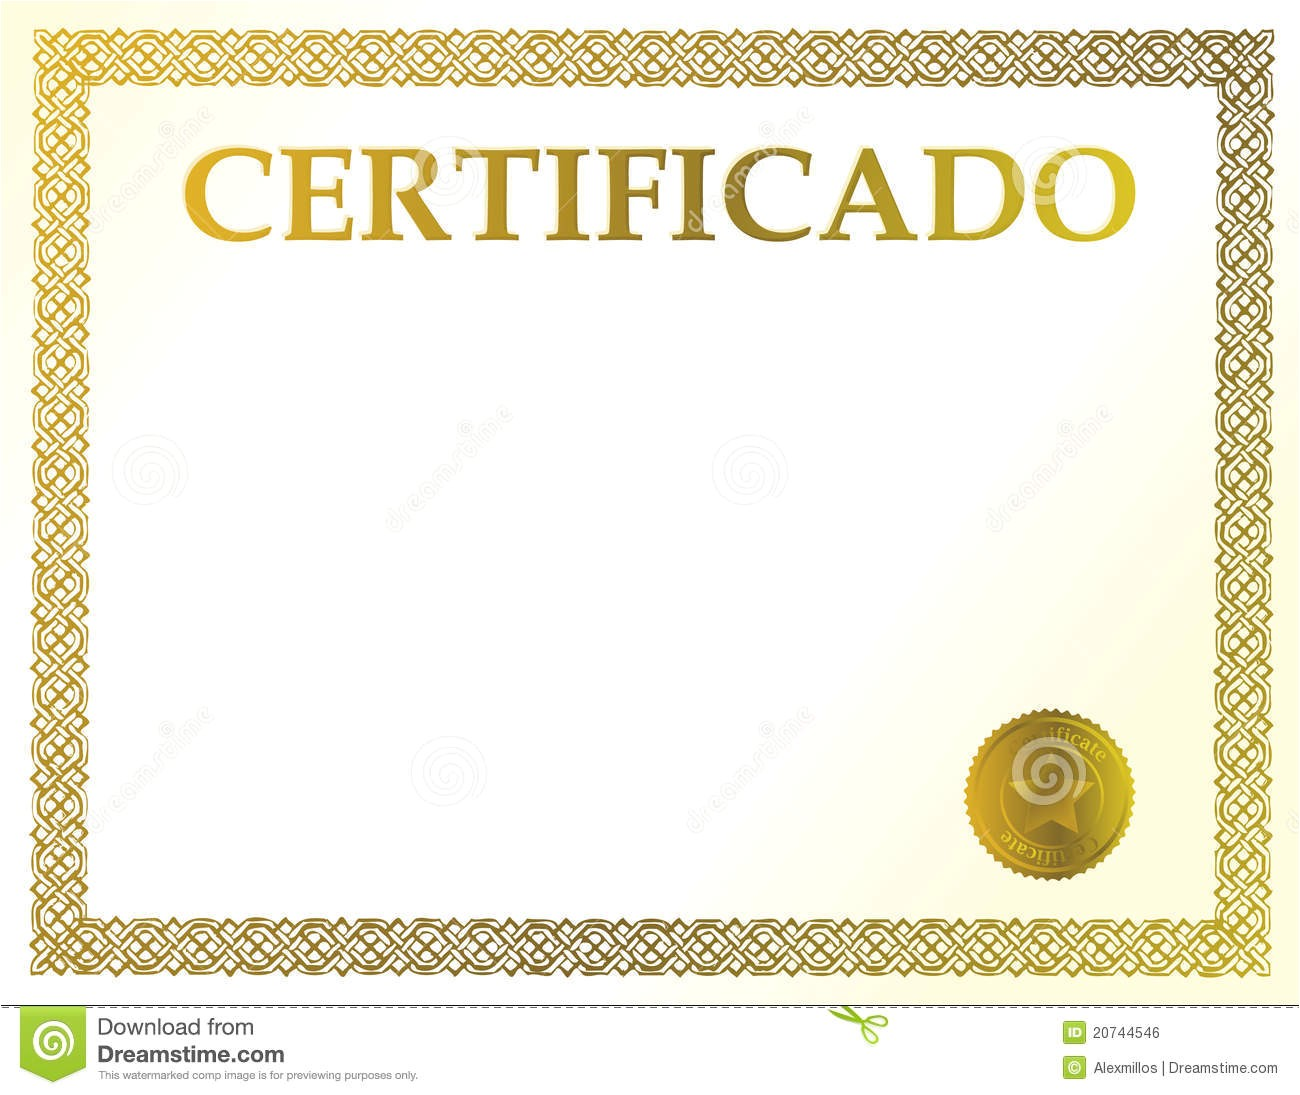 8.5 X 11 Certificate Template Spanish Blank Certificate Royalty Free Stock Image Image